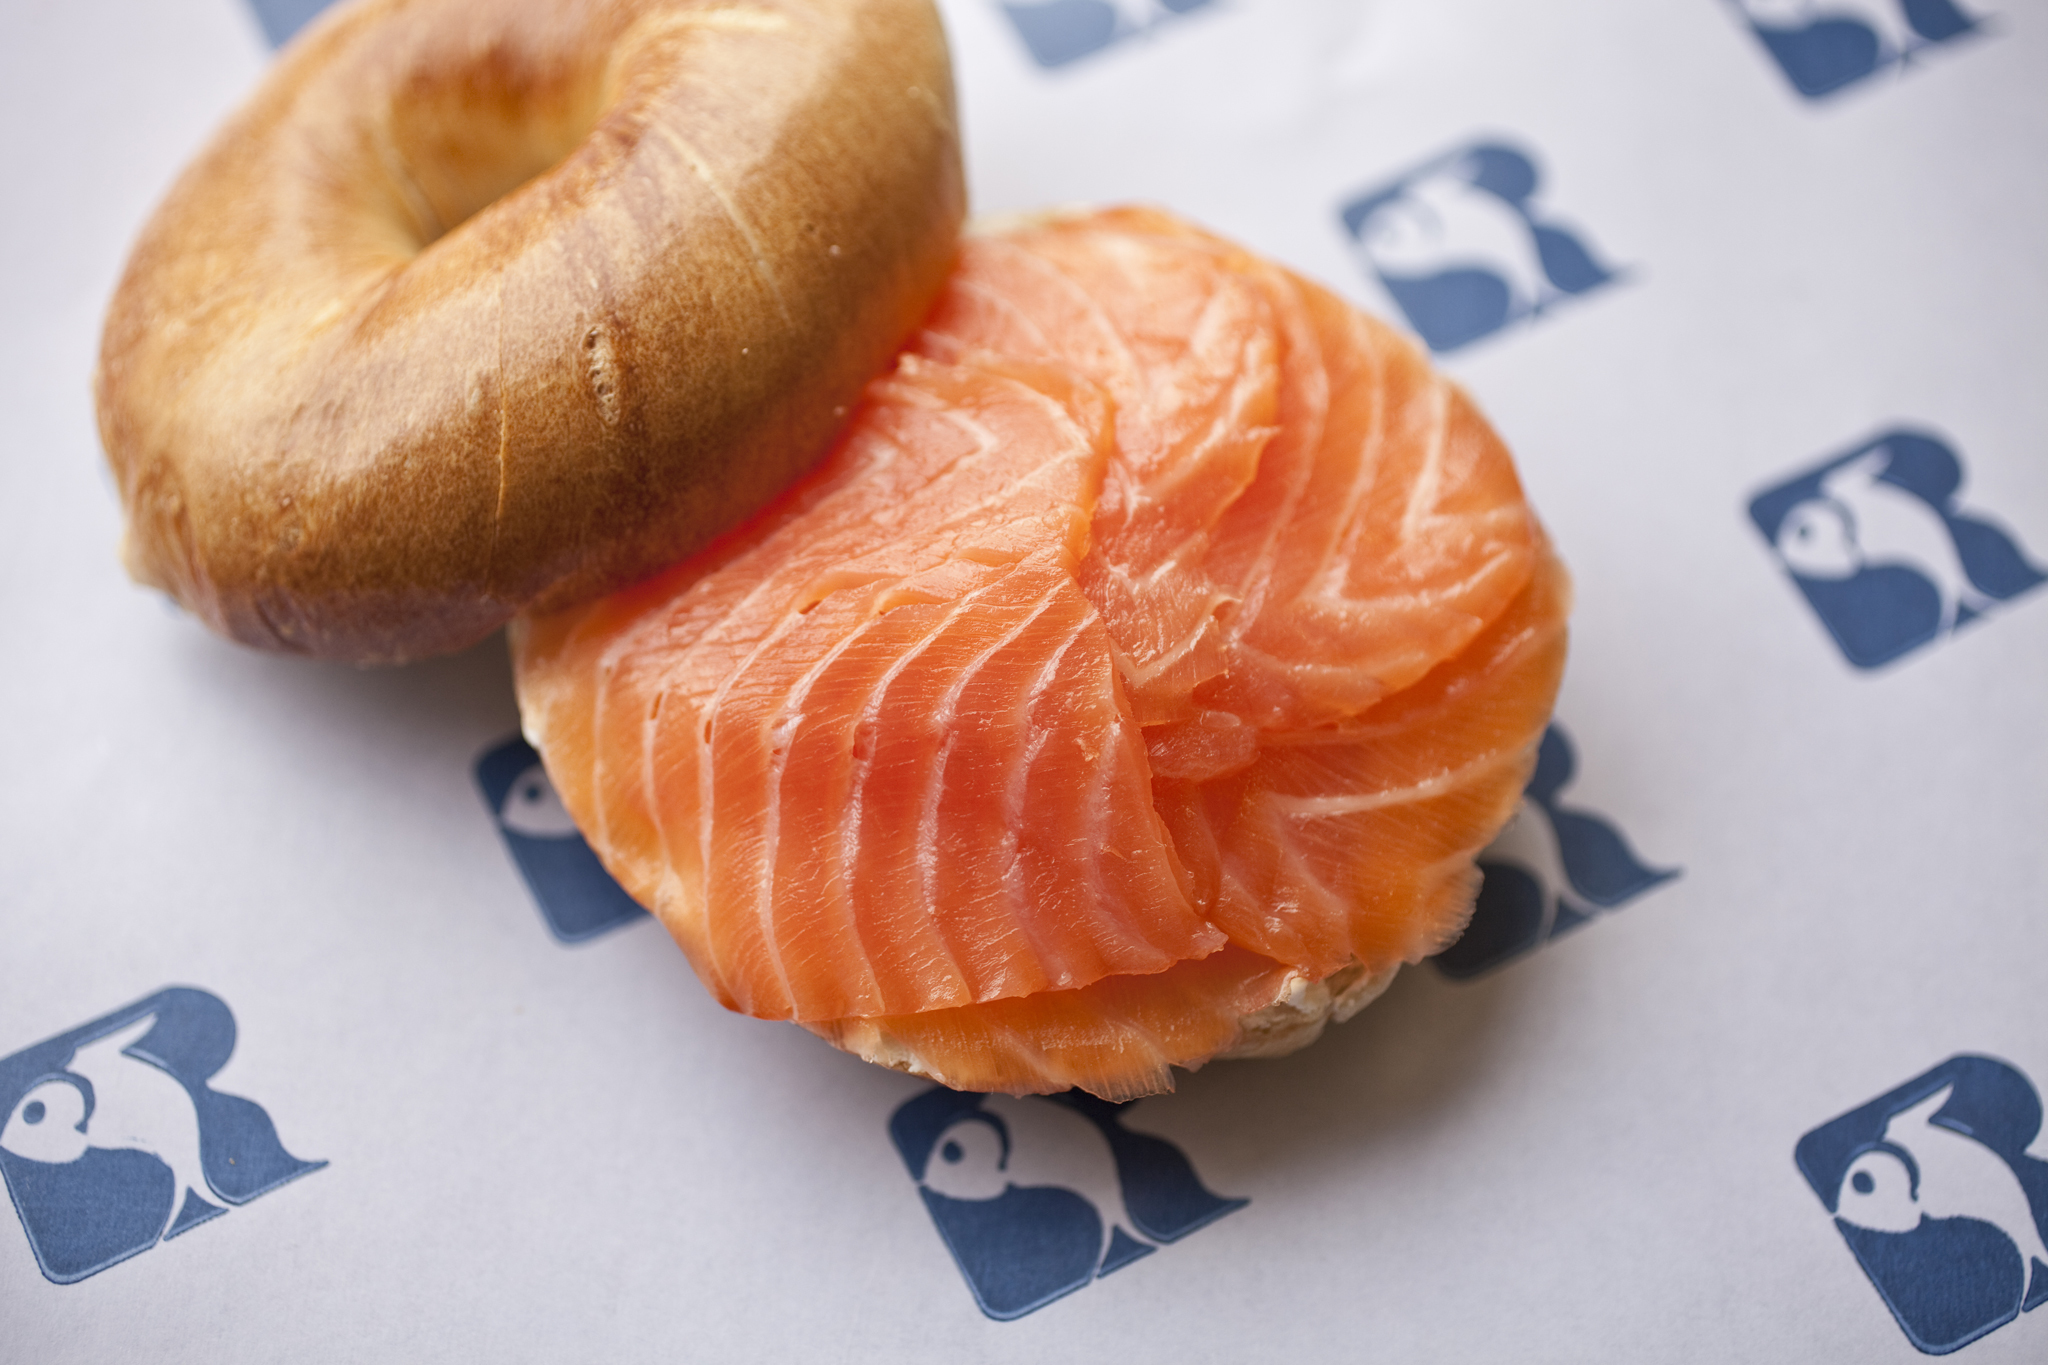 Bagel with lox at Russ & Daughters